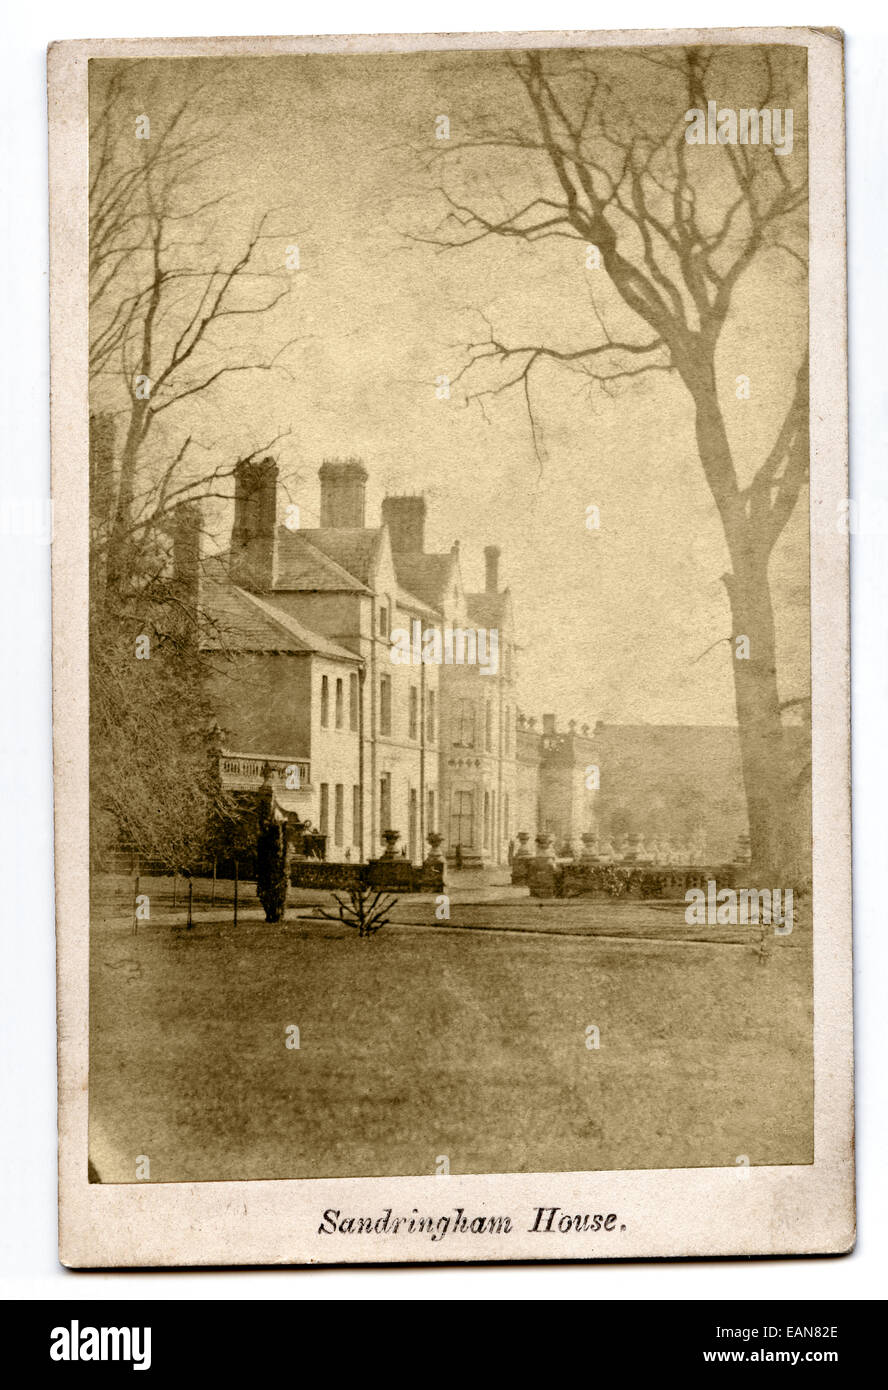 Victorian Carte De Visite Photograph Of Sandringham House Owned By Queen Elizabeth II Photographed W R Pridgeon Circa 1865